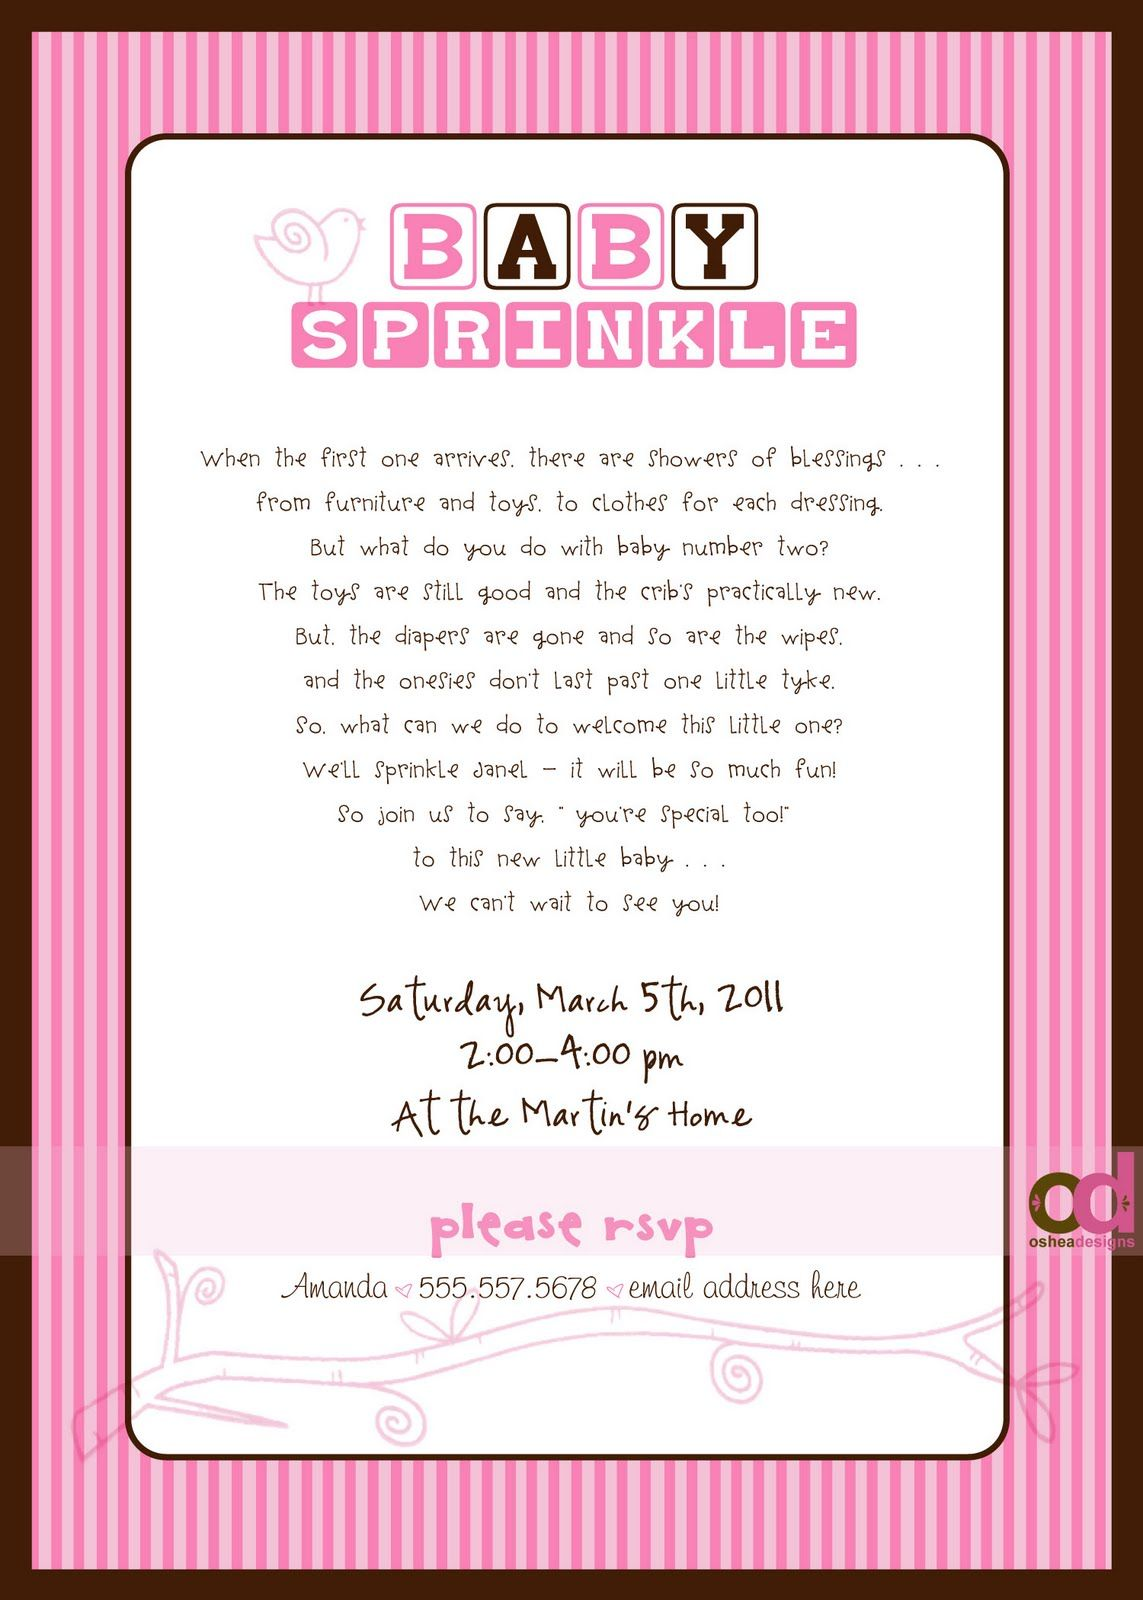 Sprinkle Invitations Wording Wish I Would Have Found This A Few Weeks Ago So Cute